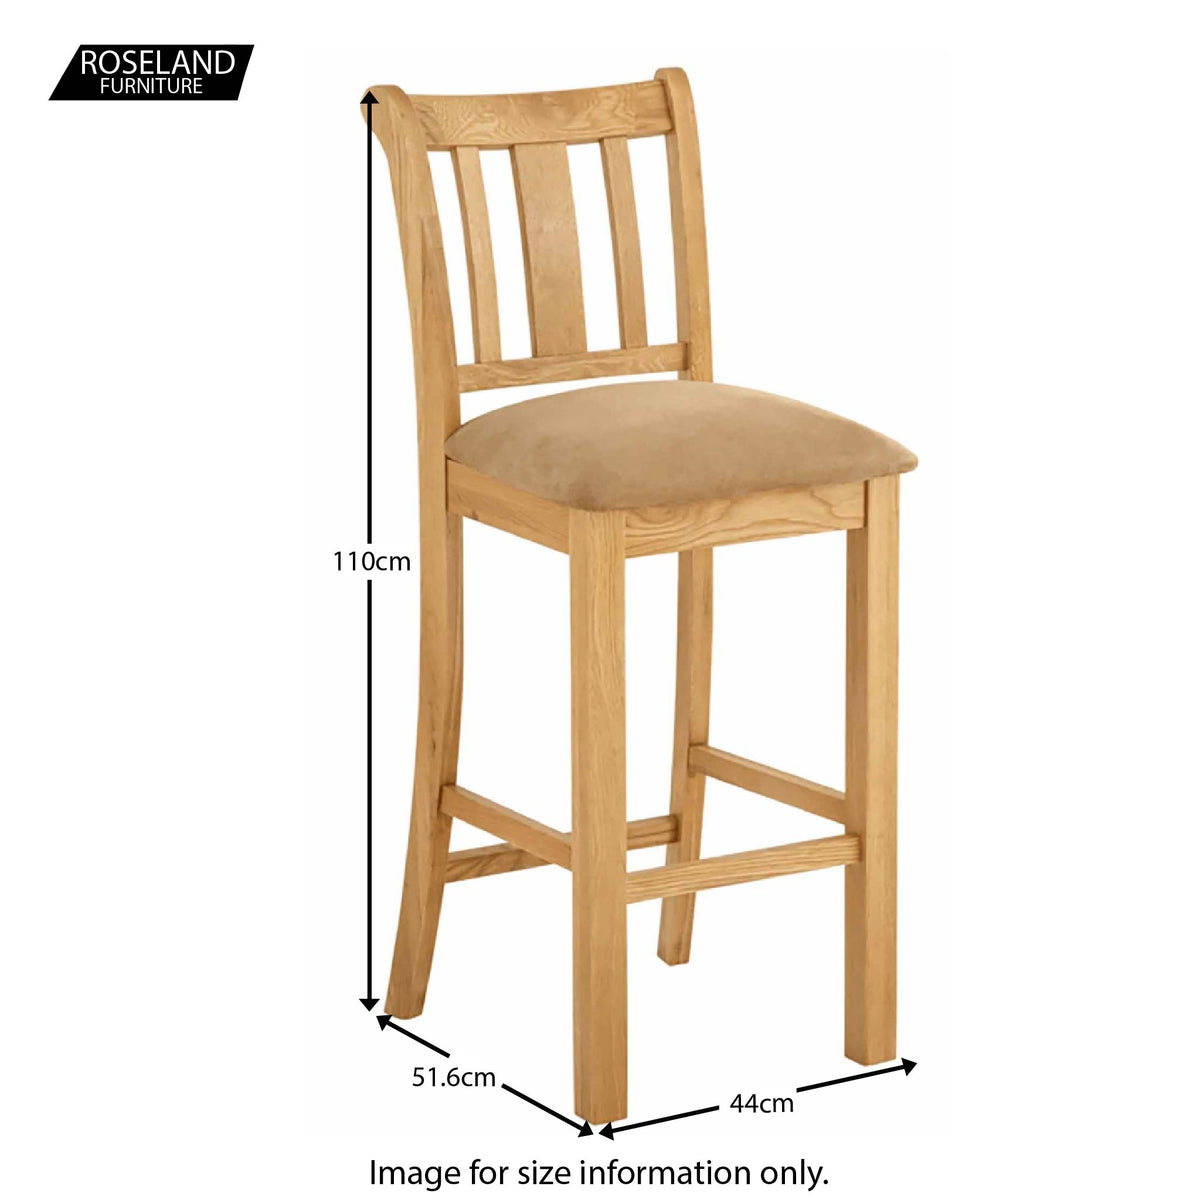 Roseland Oak Bar stool - Size Guide